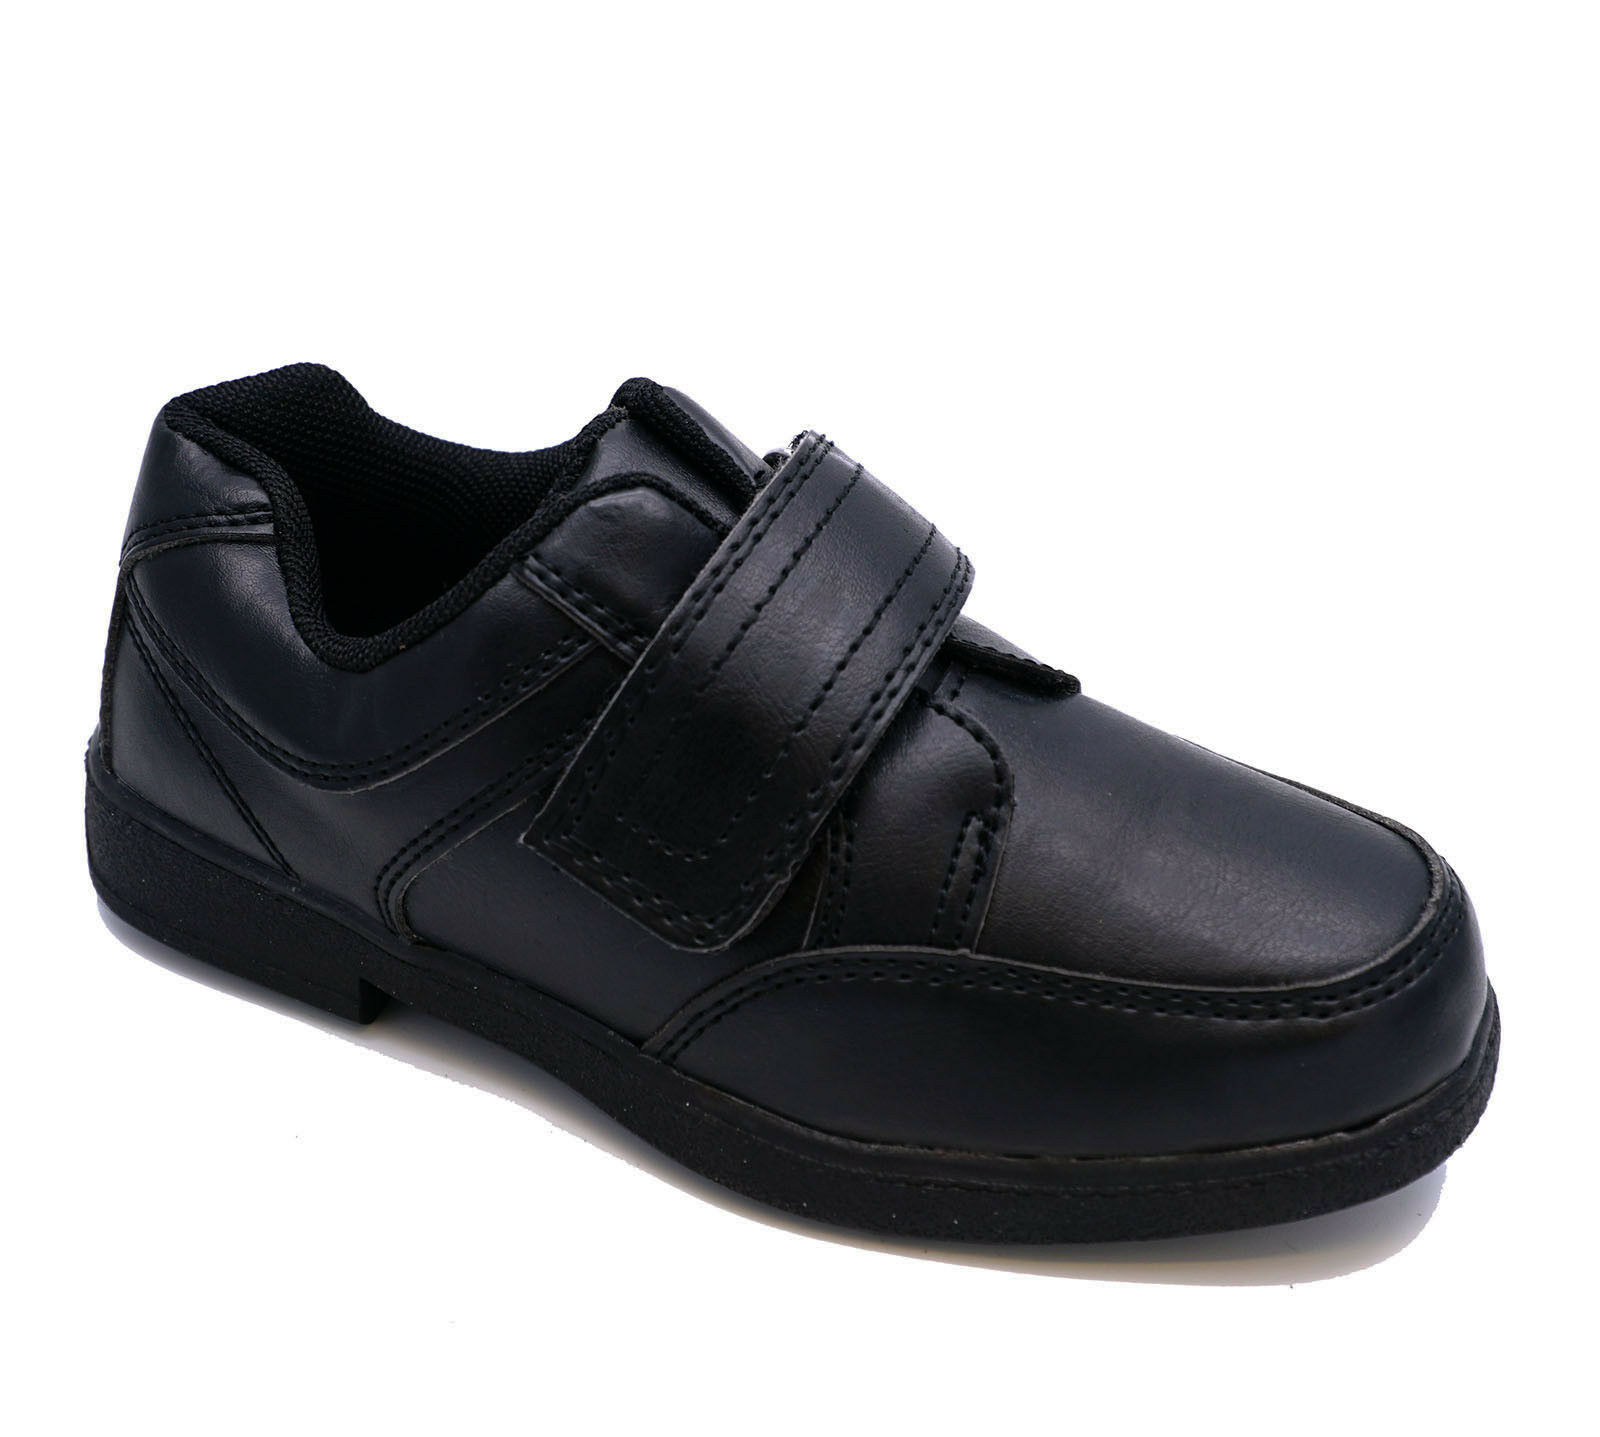 BOYS KIDS CHILDRENS BLACK SCHOOL SLIP-ON SMART FORMAL WEDDING SHOES SIZES 10-3